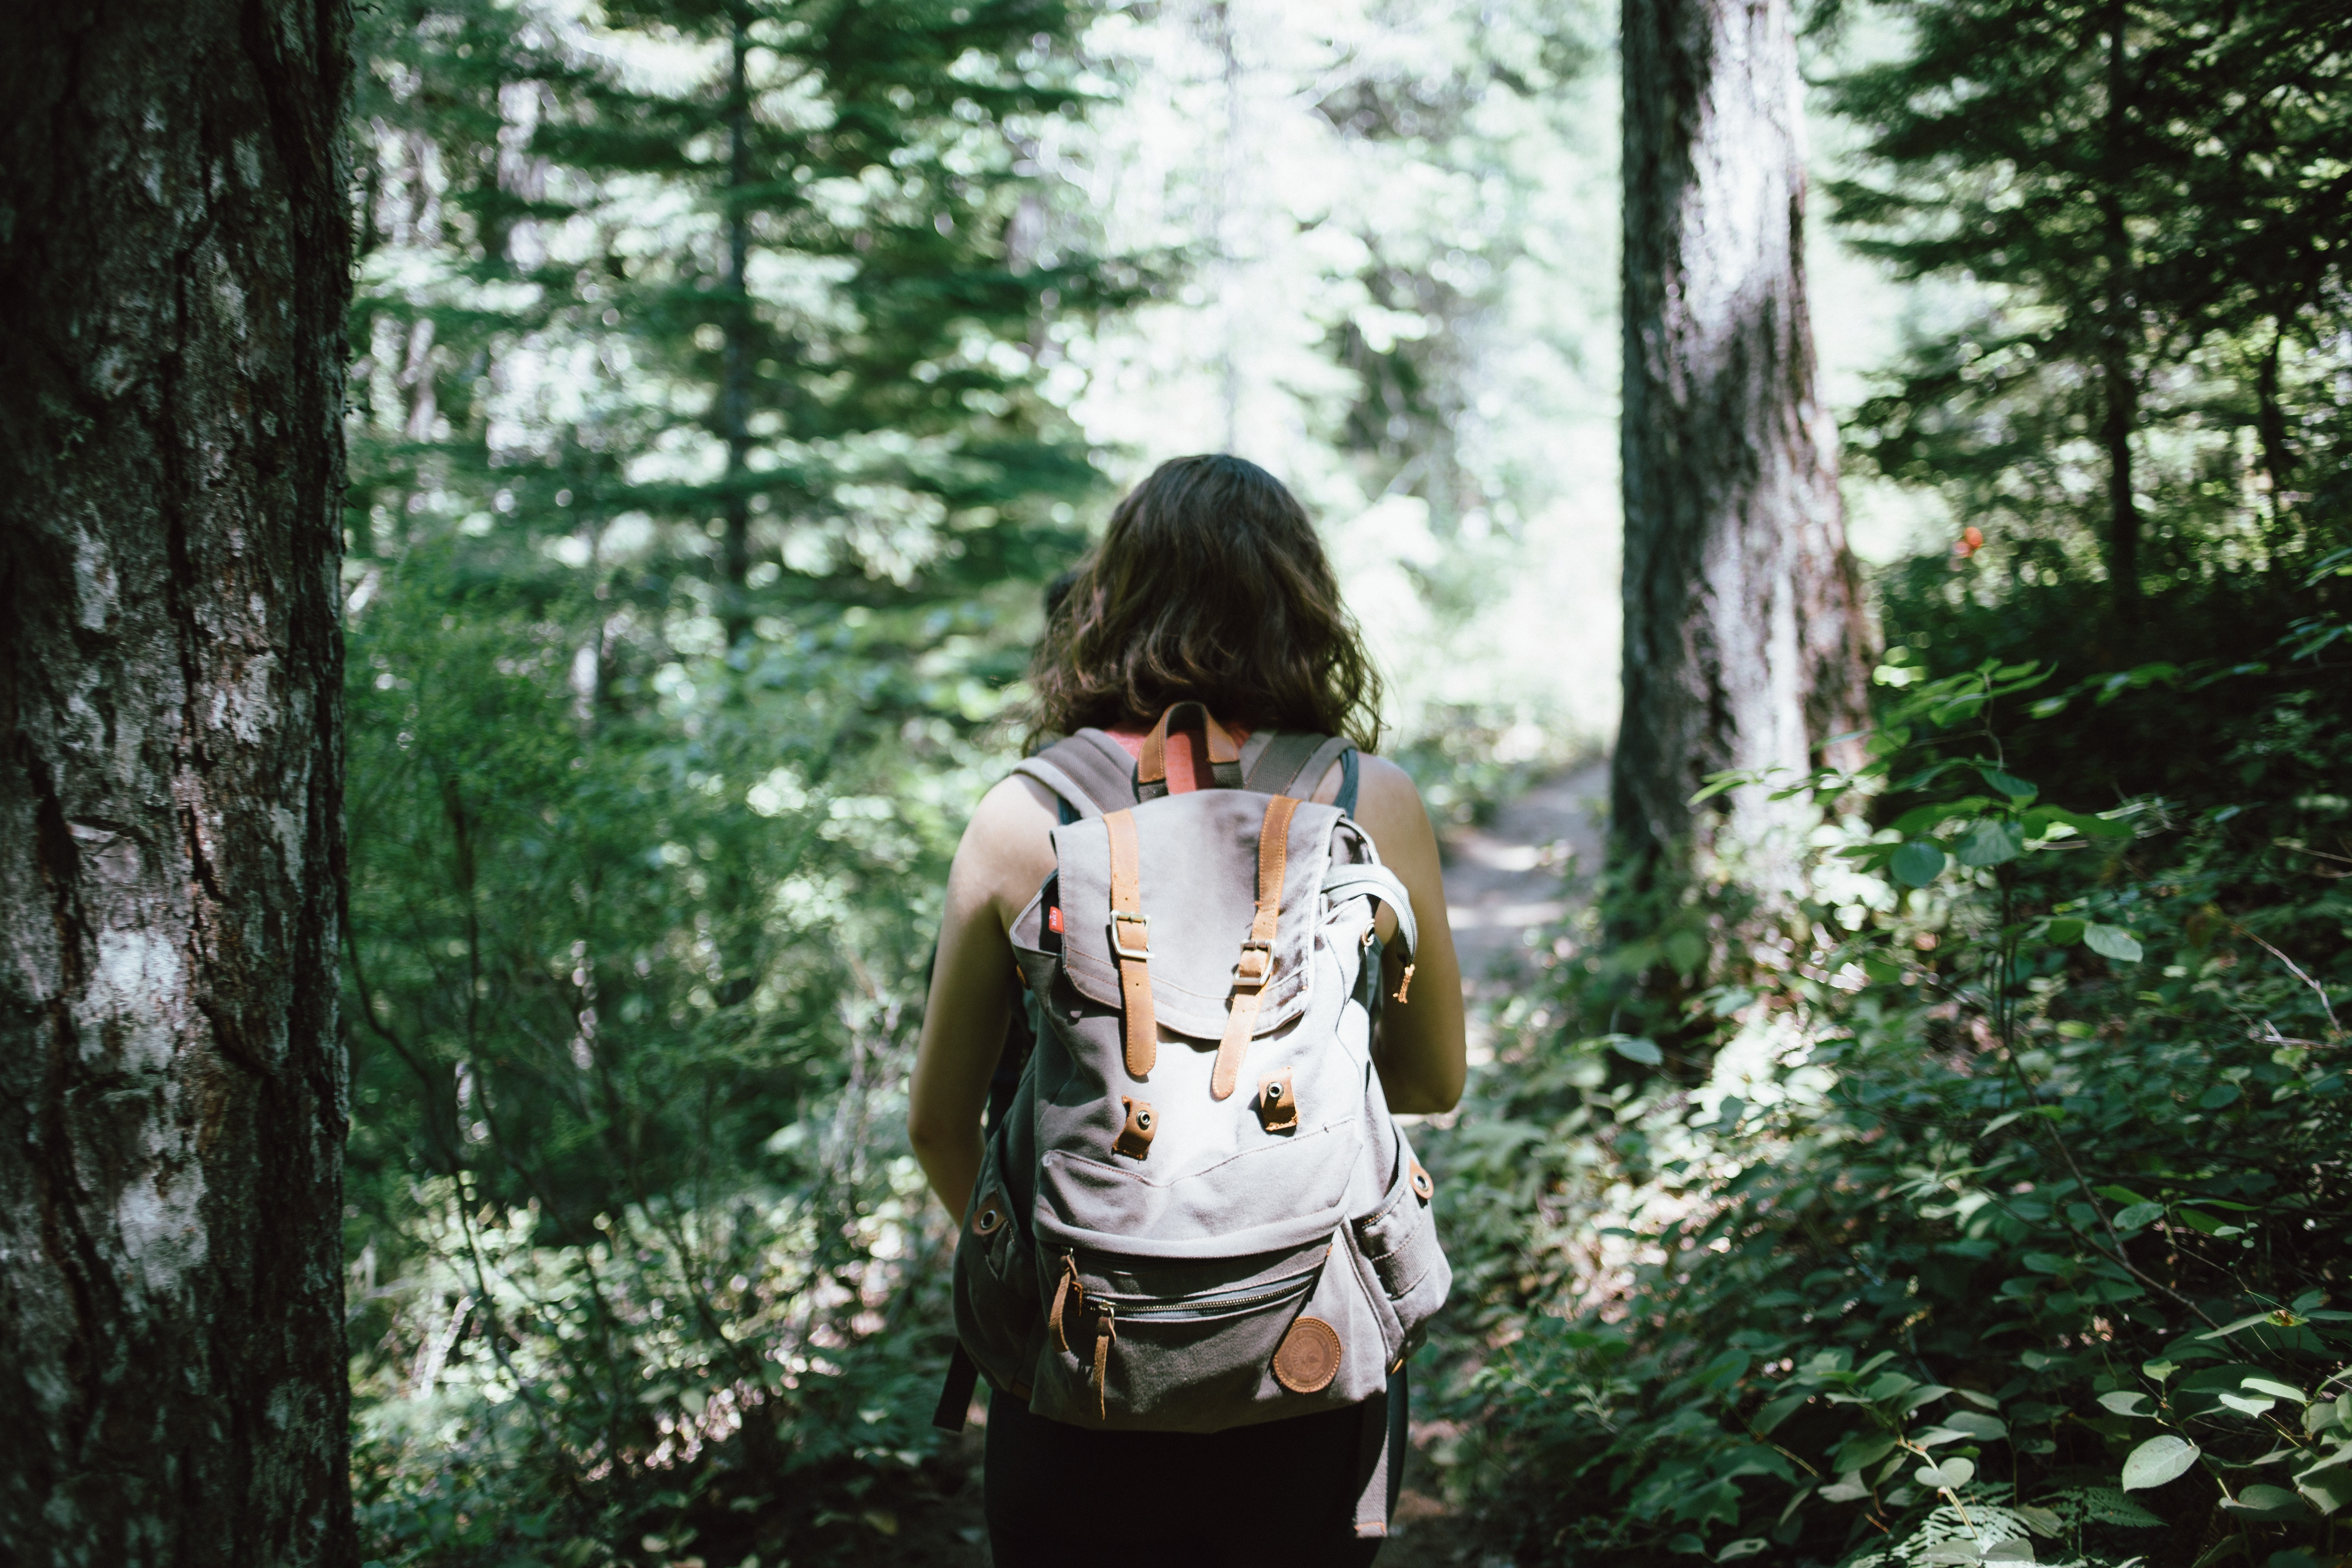 #Hiking My Feelings: Healing Your Mind and Body on the Trail